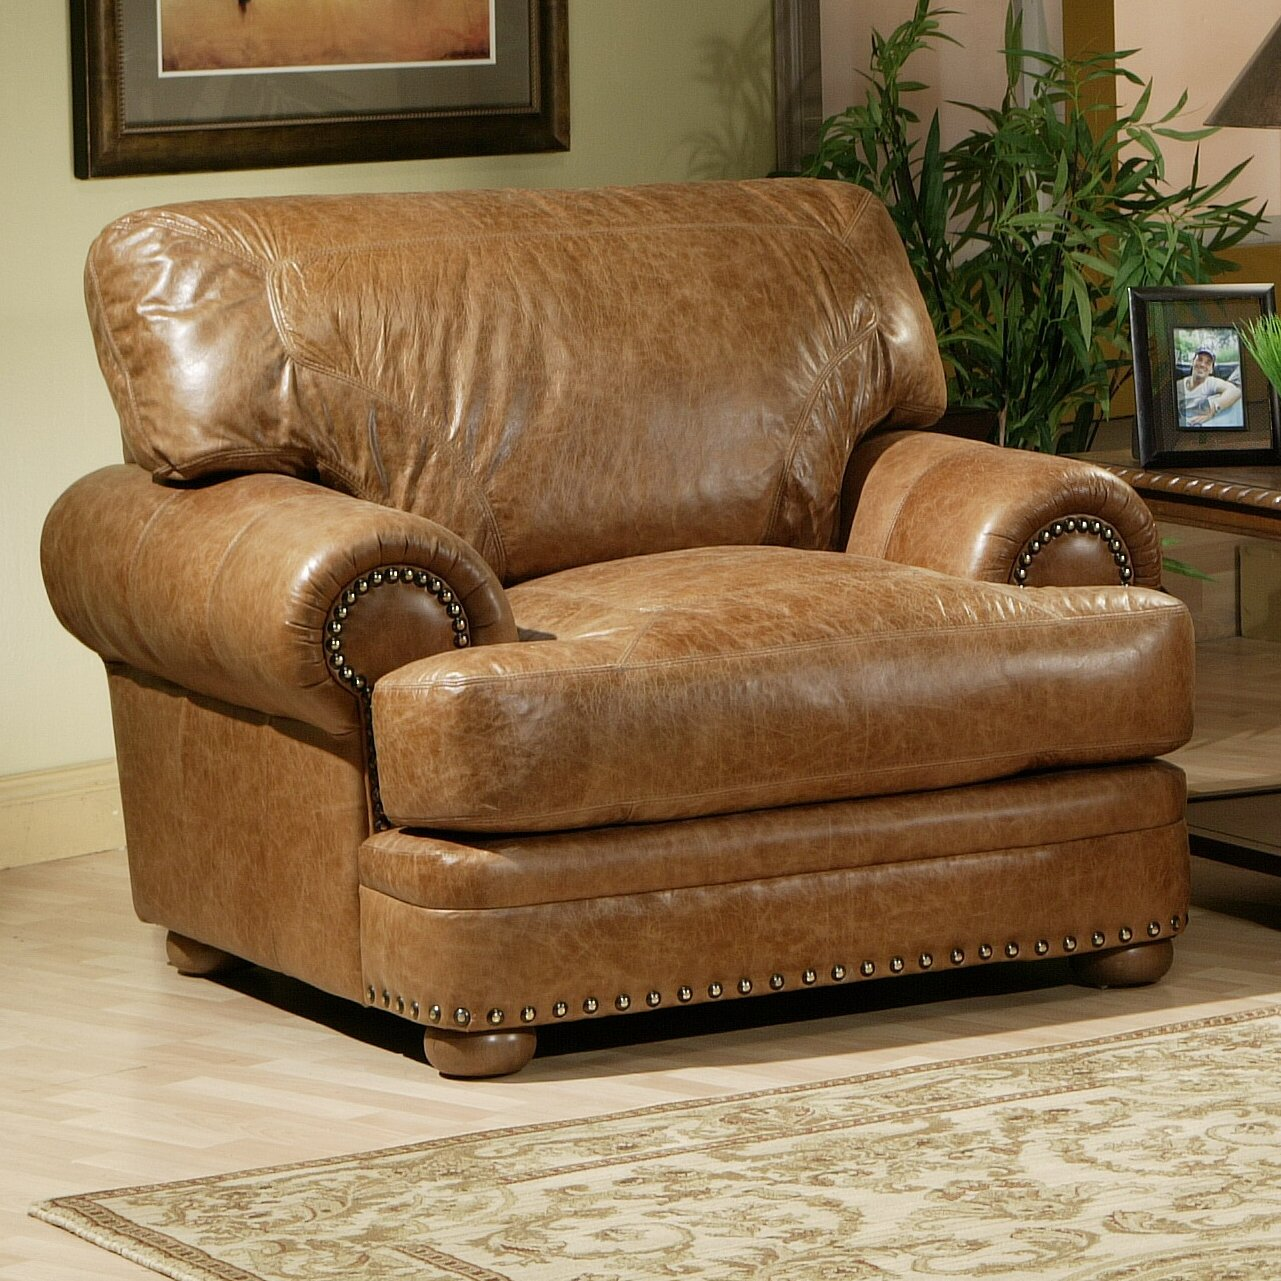 Omnia leather houston leather living room set